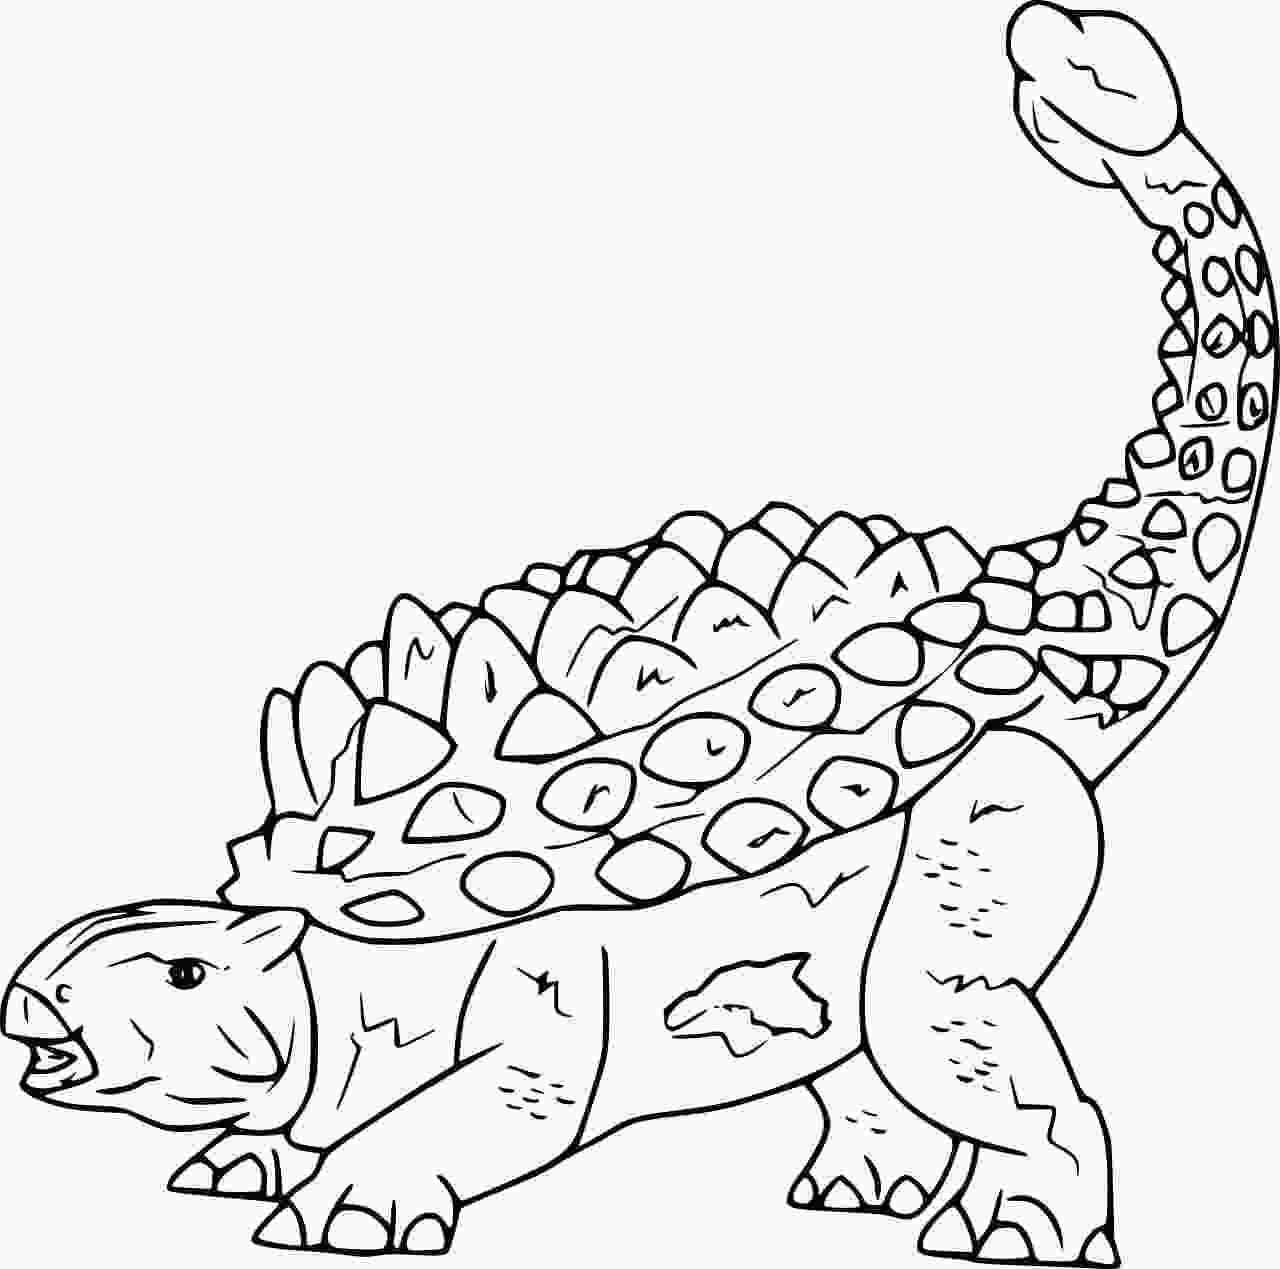 Crichtonsaurus is a genus of ankylosaurid dinosaur that originated from Late Cretaceous Asia Coloring Page